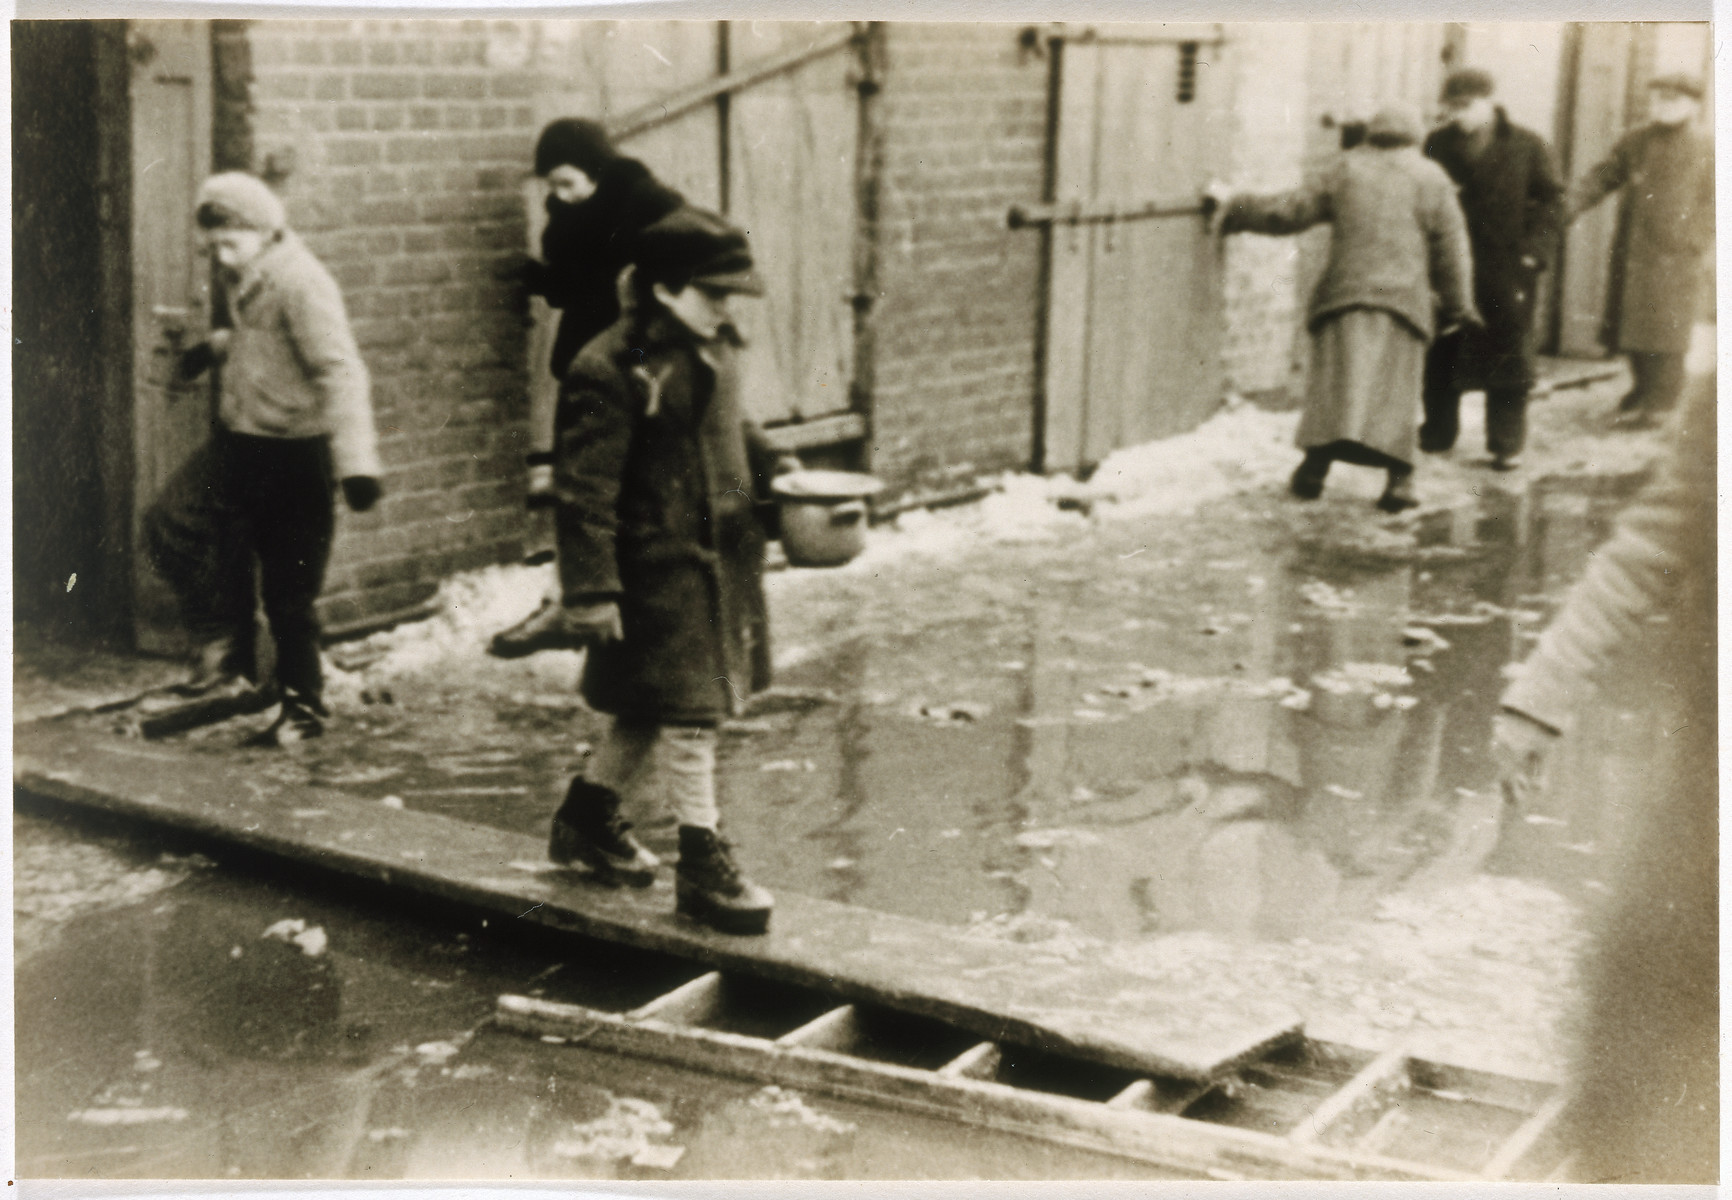 A child holding a soup bowl crosses a flooded street on a plank of wood.